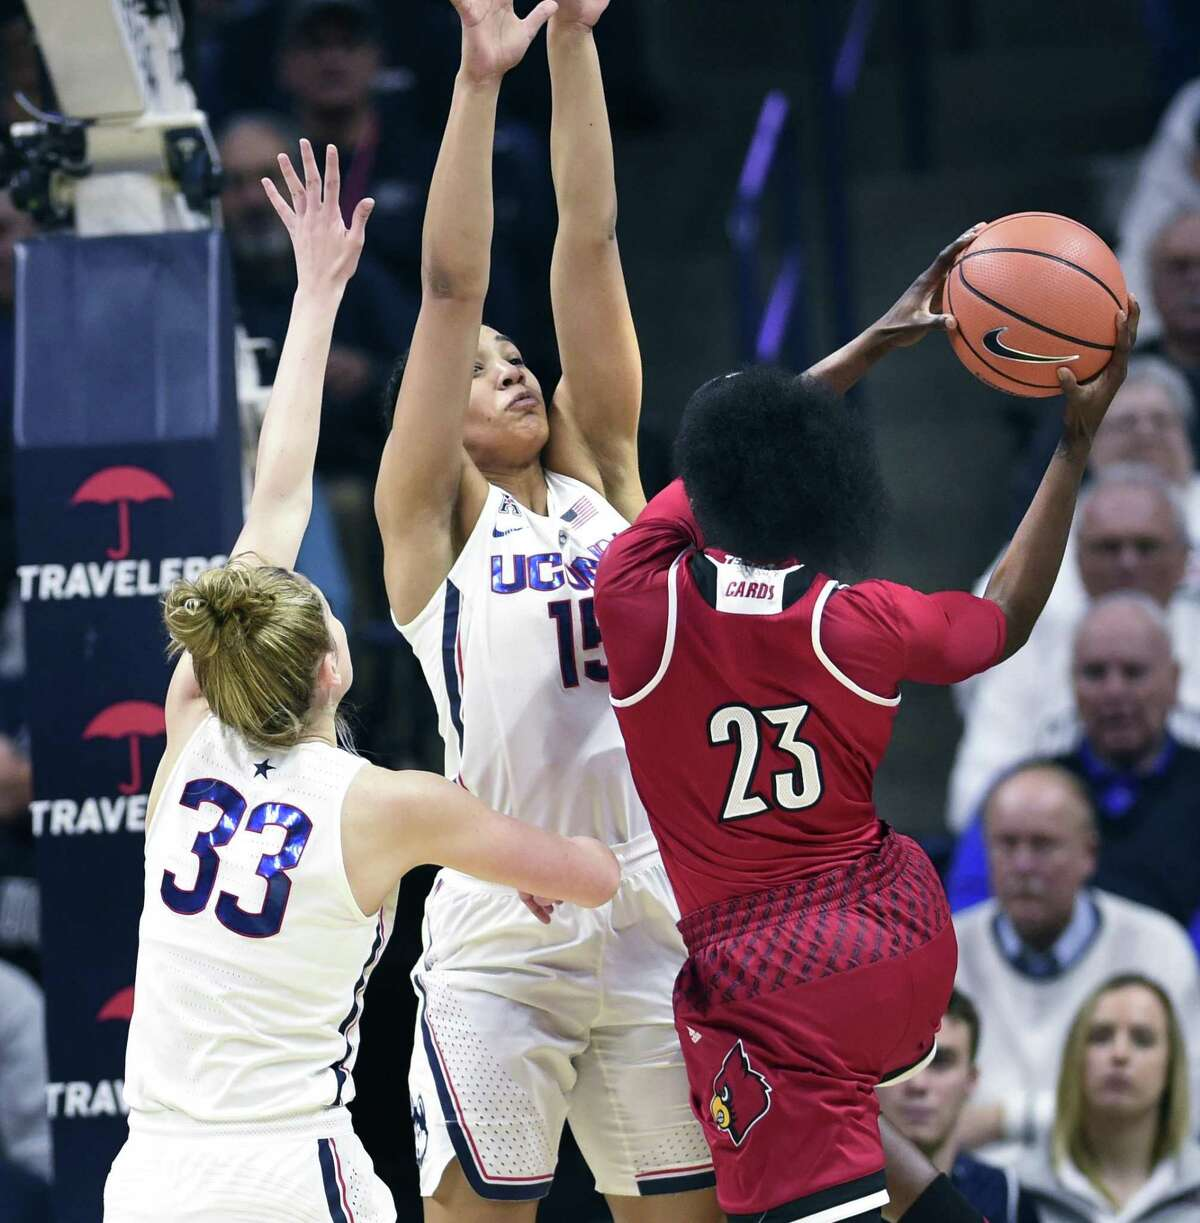 Louisville's Jazmine Jones (23) is defended by Connecticut's Gabby Williams (15) and Connecticut's Katie Lou Samuelson (33) in the second half of an NCAA college basketball game Monday, Feb. 12, 2018, in Storrs, Conn. UConn won 69-58. (AP Photo/Stephen Dunn)